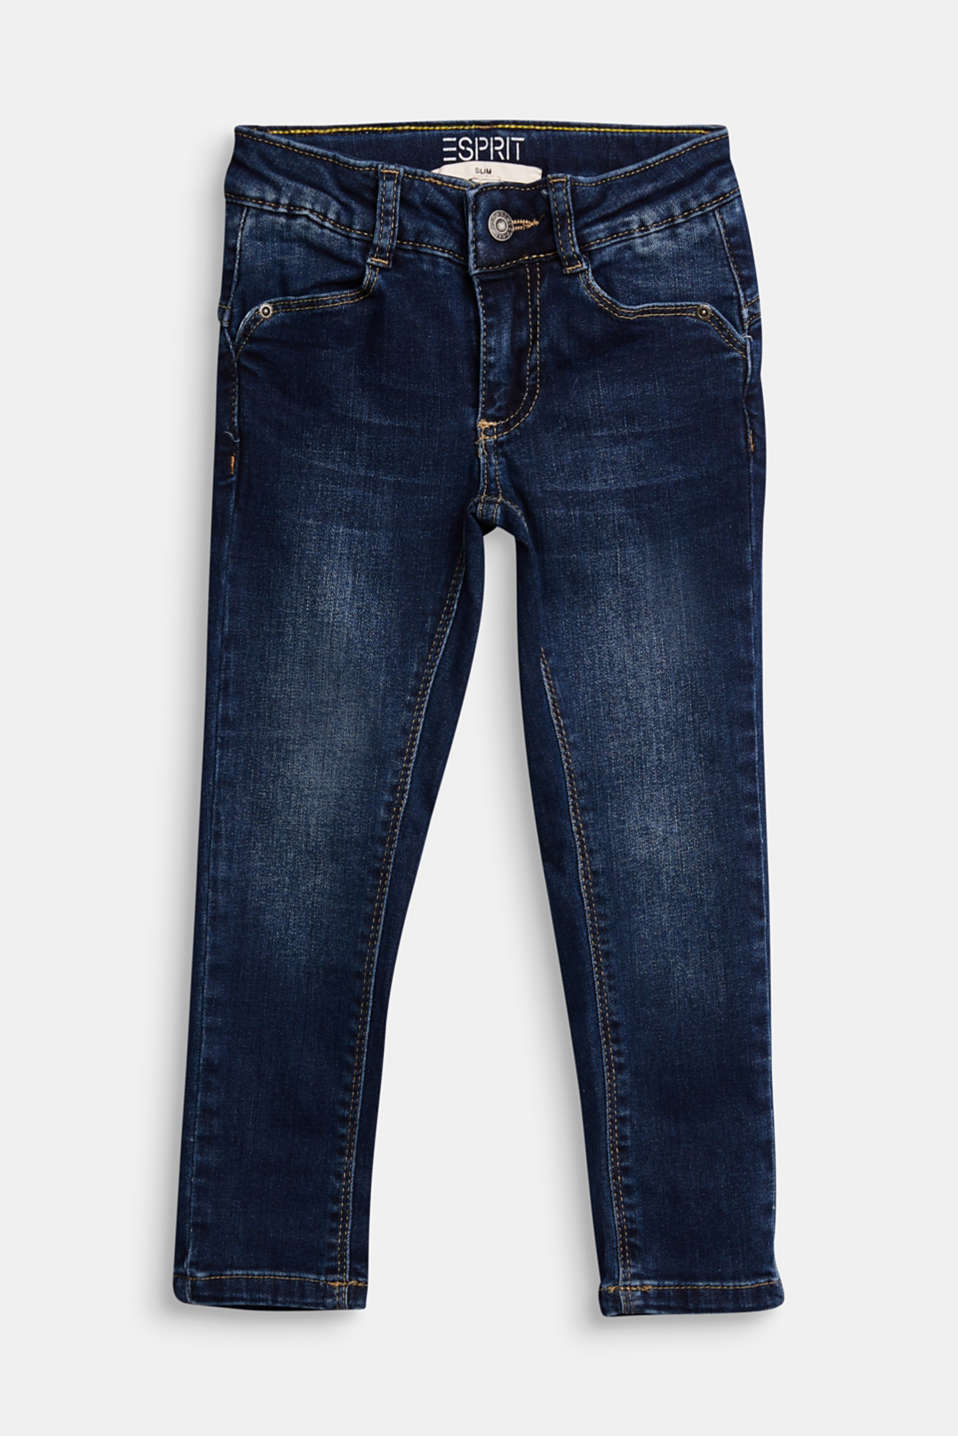 Esprit - Adjustable waistband jeans with recycled cotton